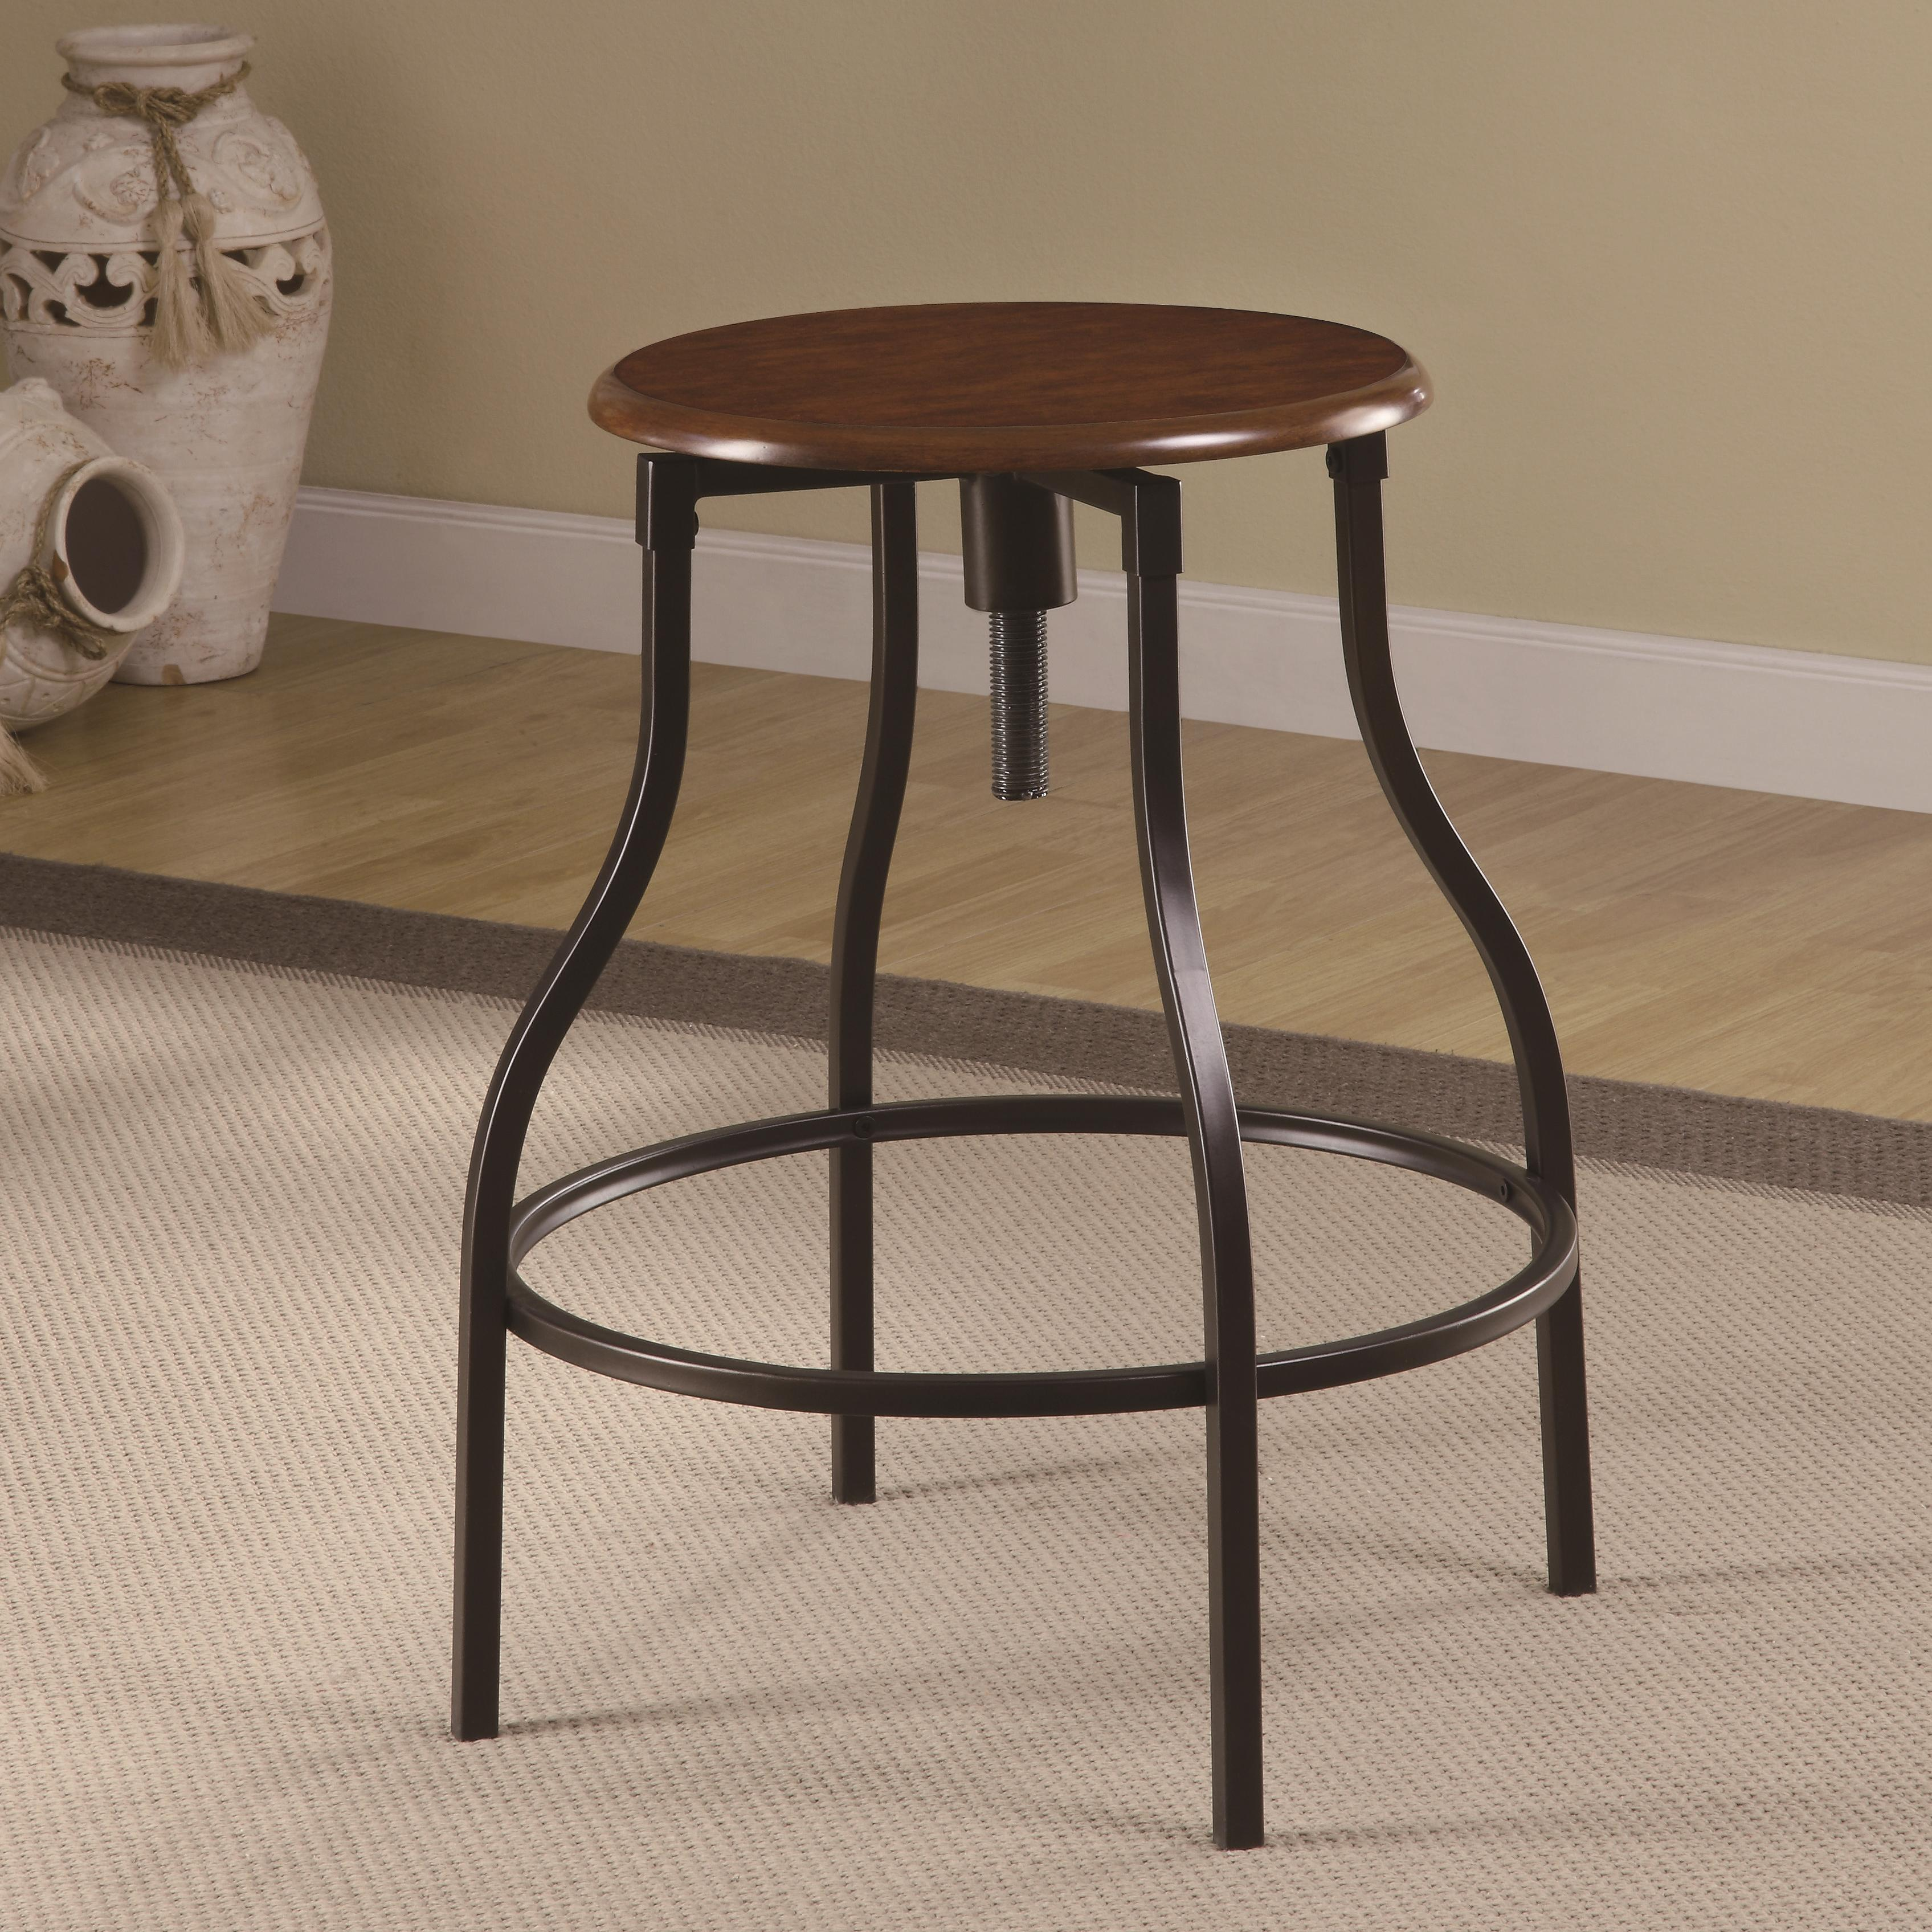 Coaster Dining Chairs and Bar Stools Bar Stool - Item Number: 100199